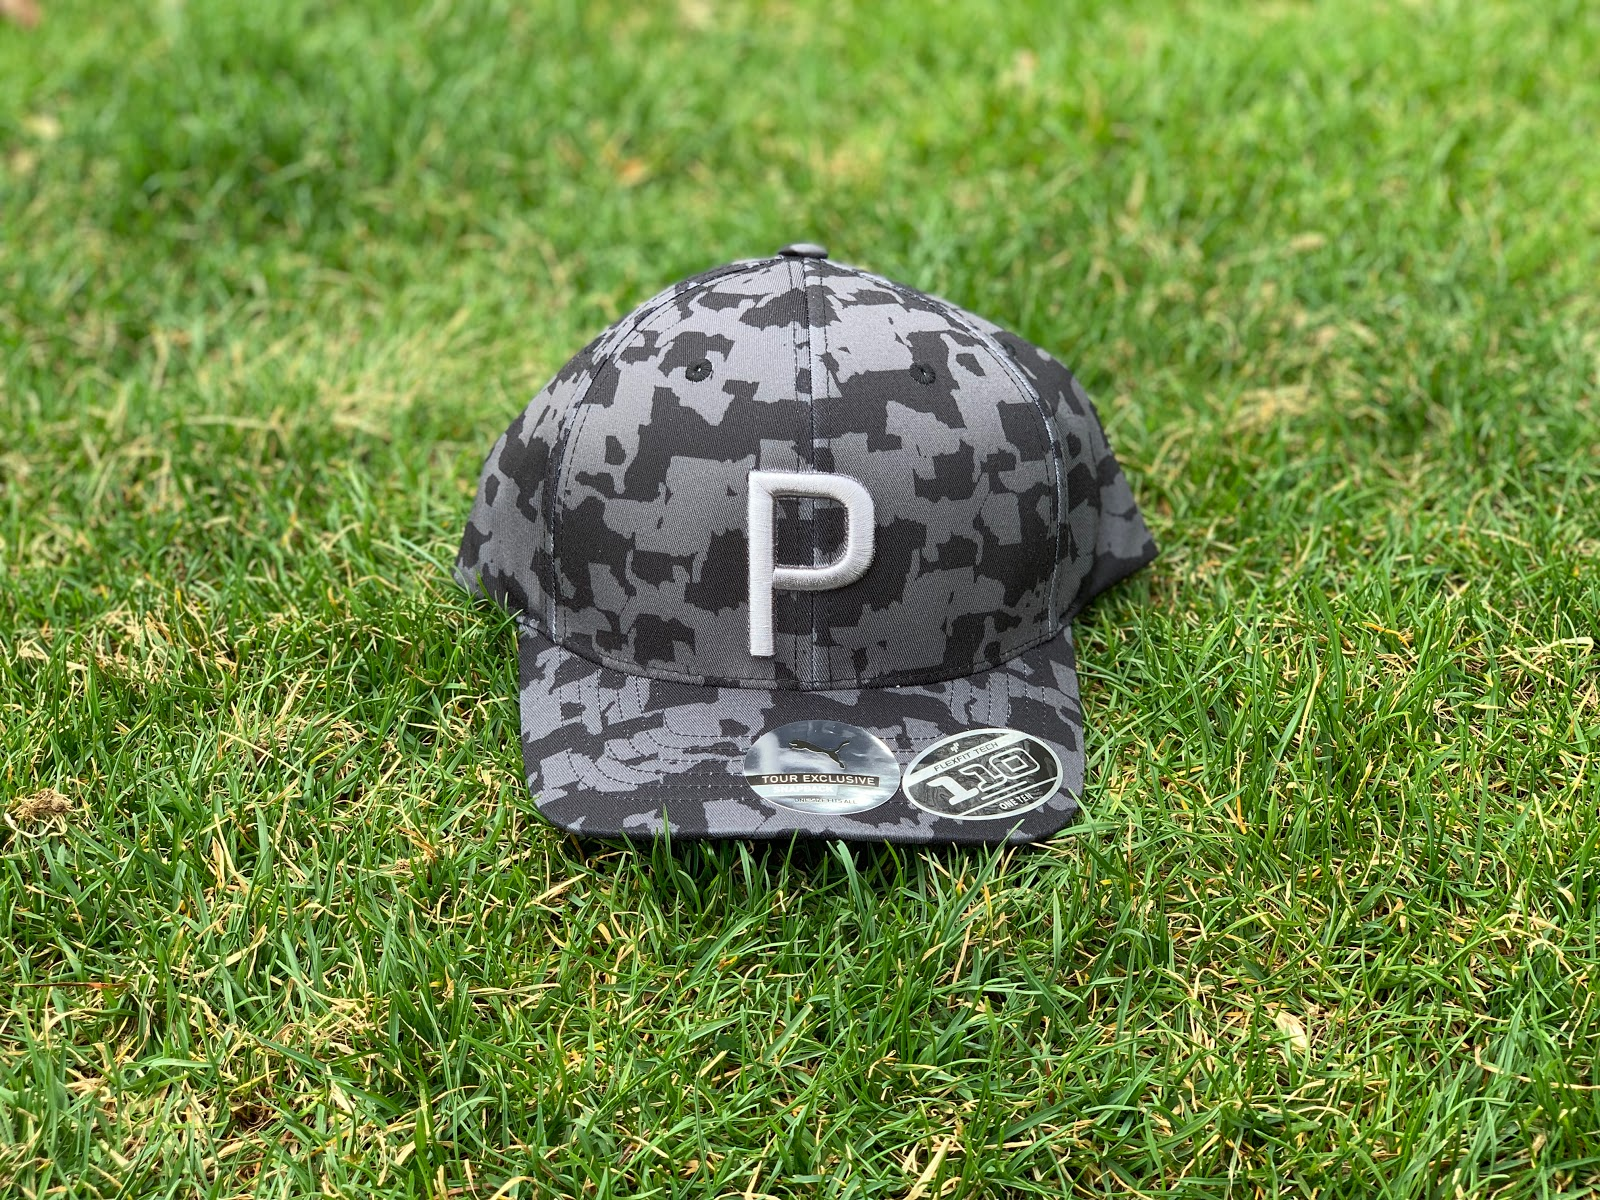 bc43ba31008 You can also enter on twitter when you see my Masters PUMA Masters Union  Camo P Cap giveaway tweet. Be sure you're following me and PUMA, and then  just RT ...